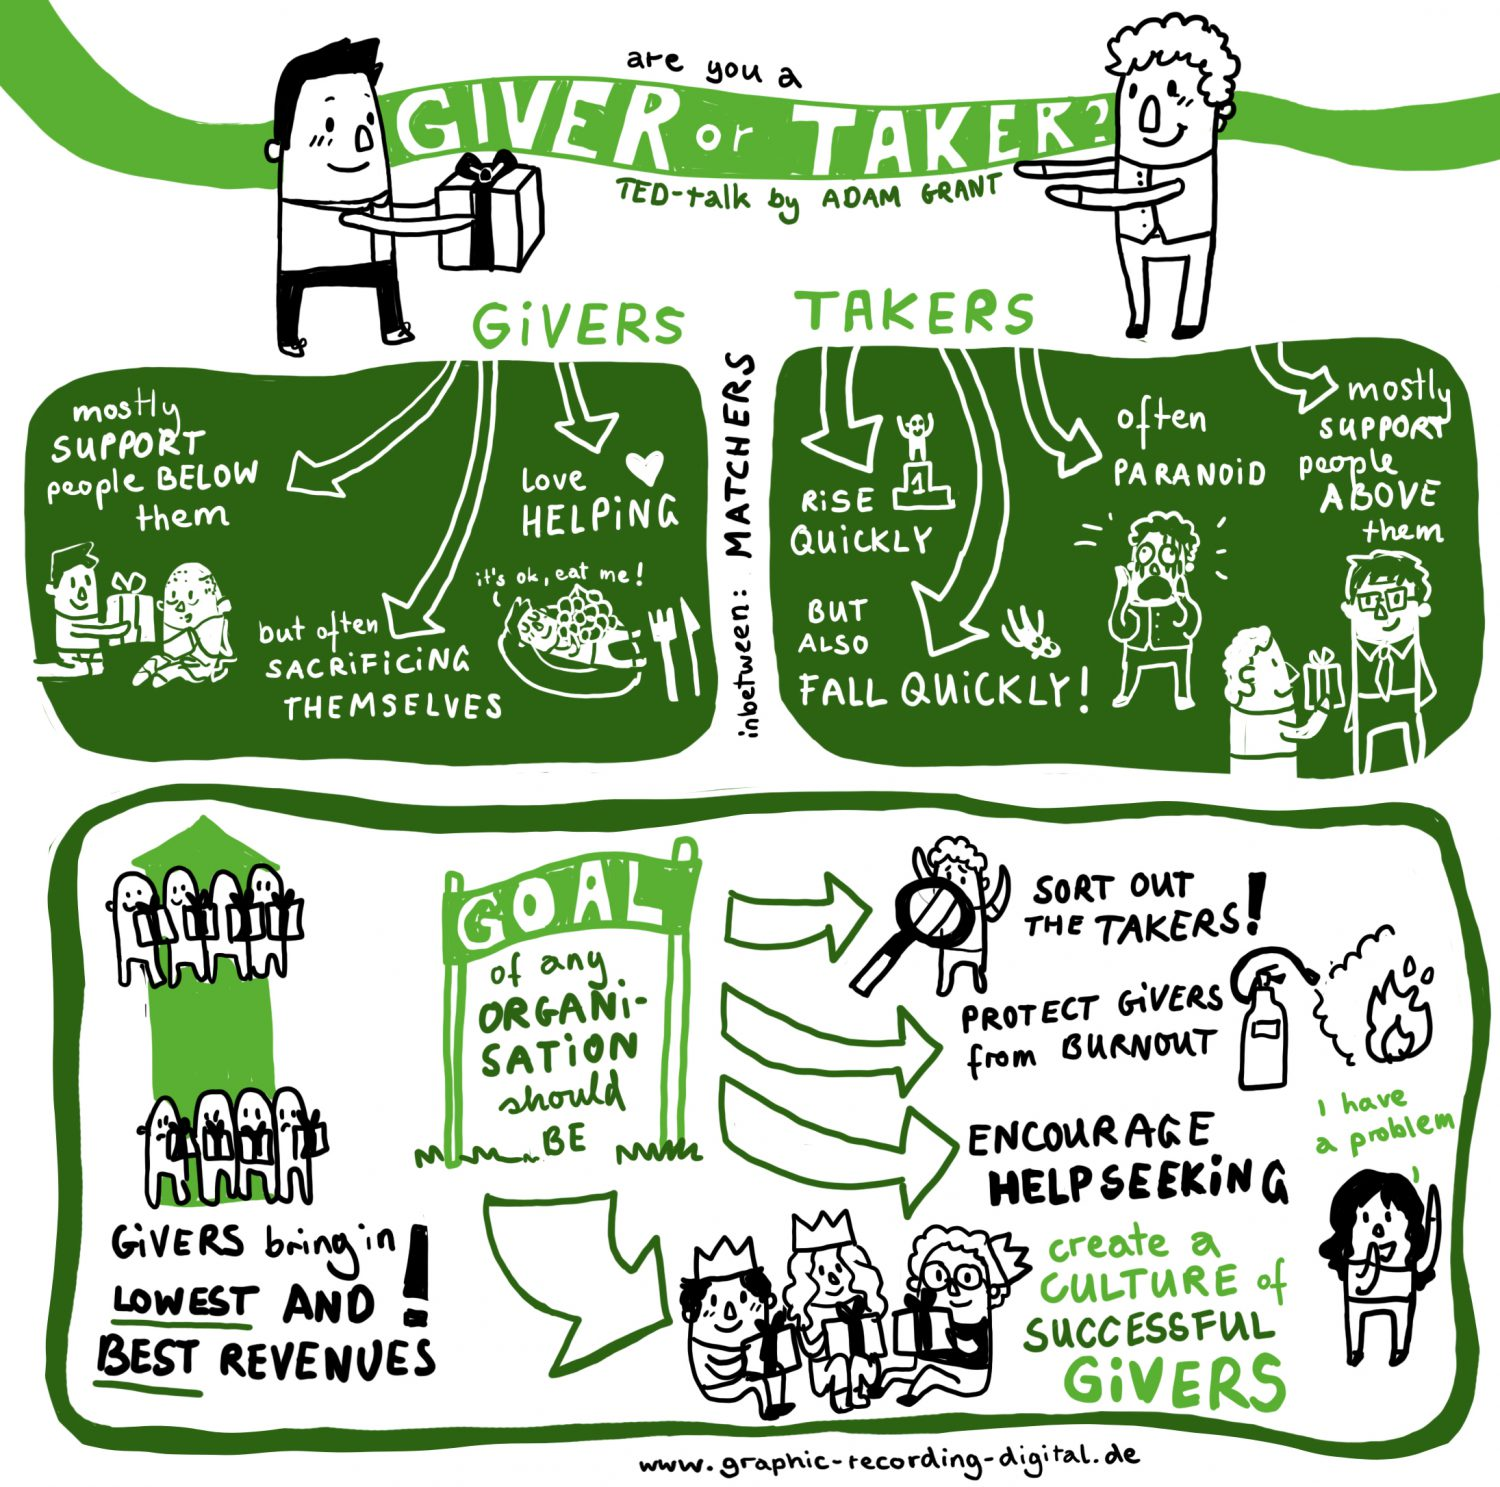 Weekly Graphic Recording TED talk Adam Grant Giver or Taker